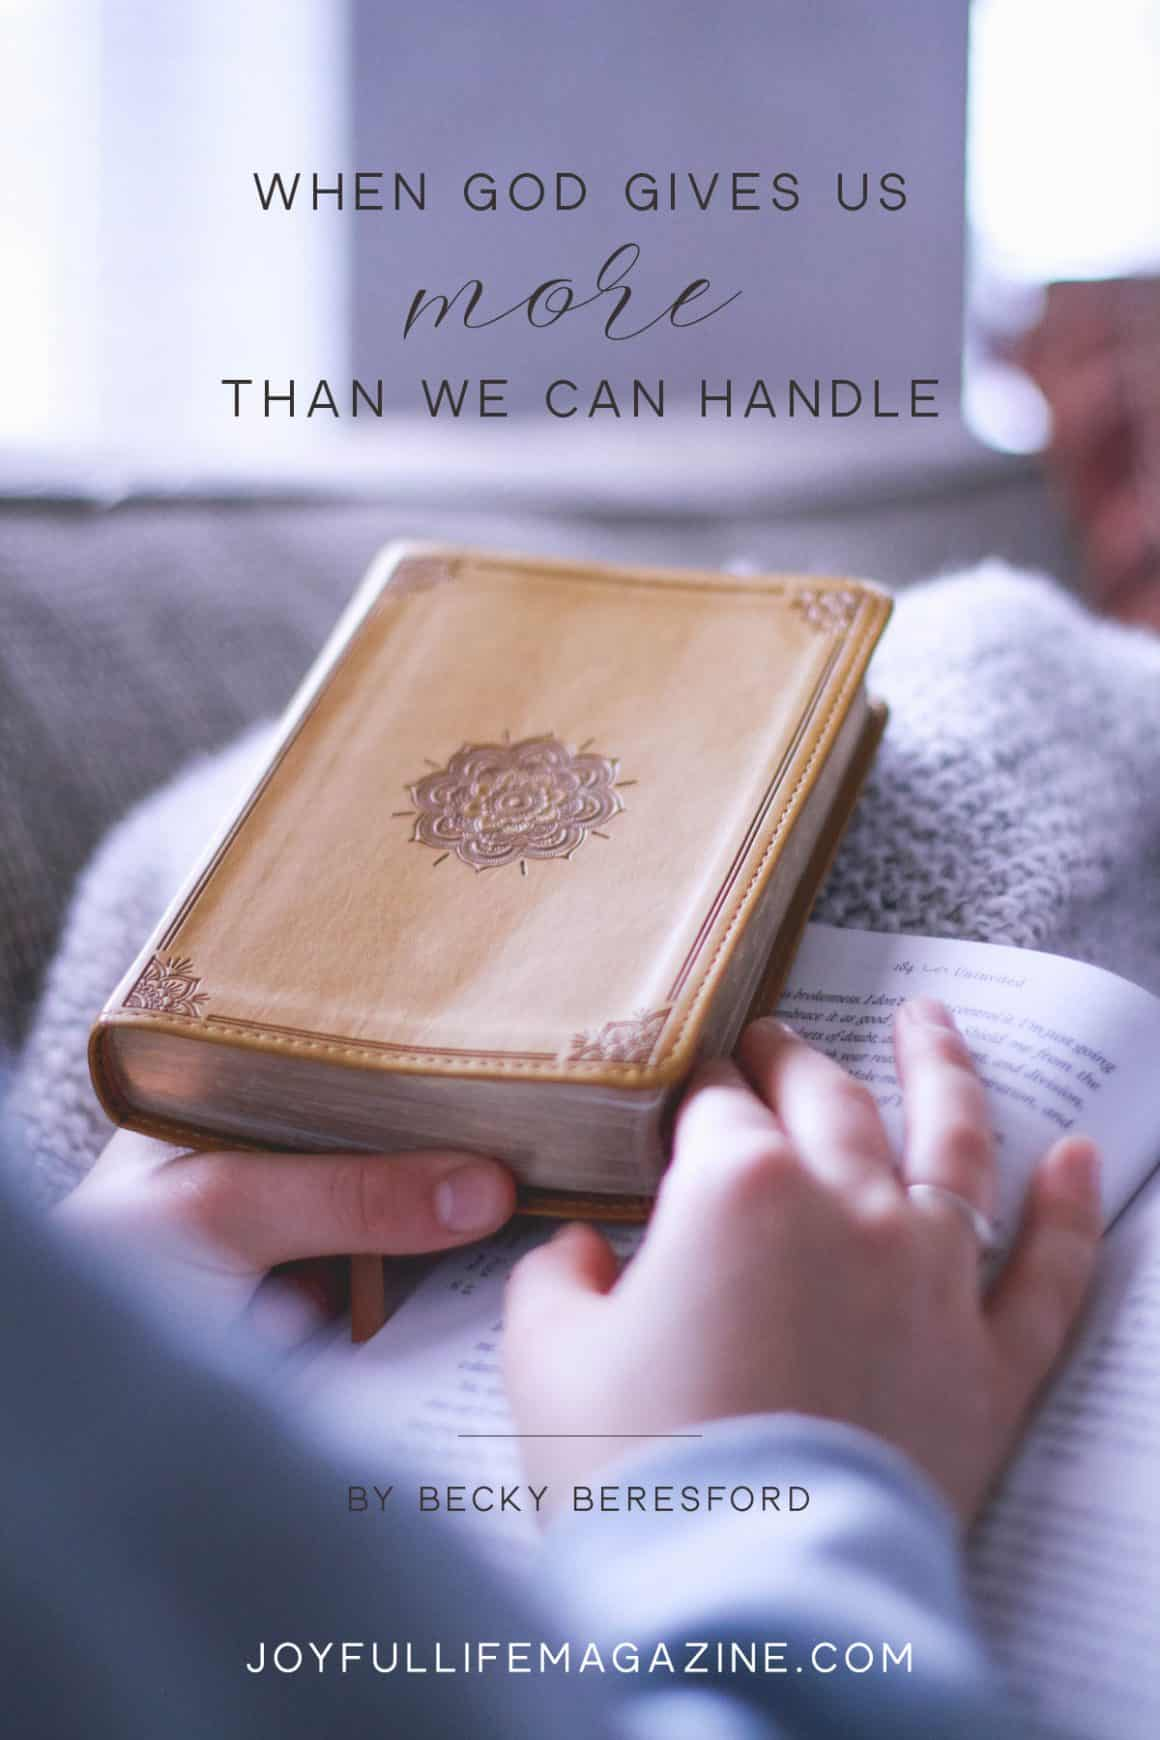 When God Gives Us More Than We Can Handle | by Becky Beresford | The Joyful Life Magazine